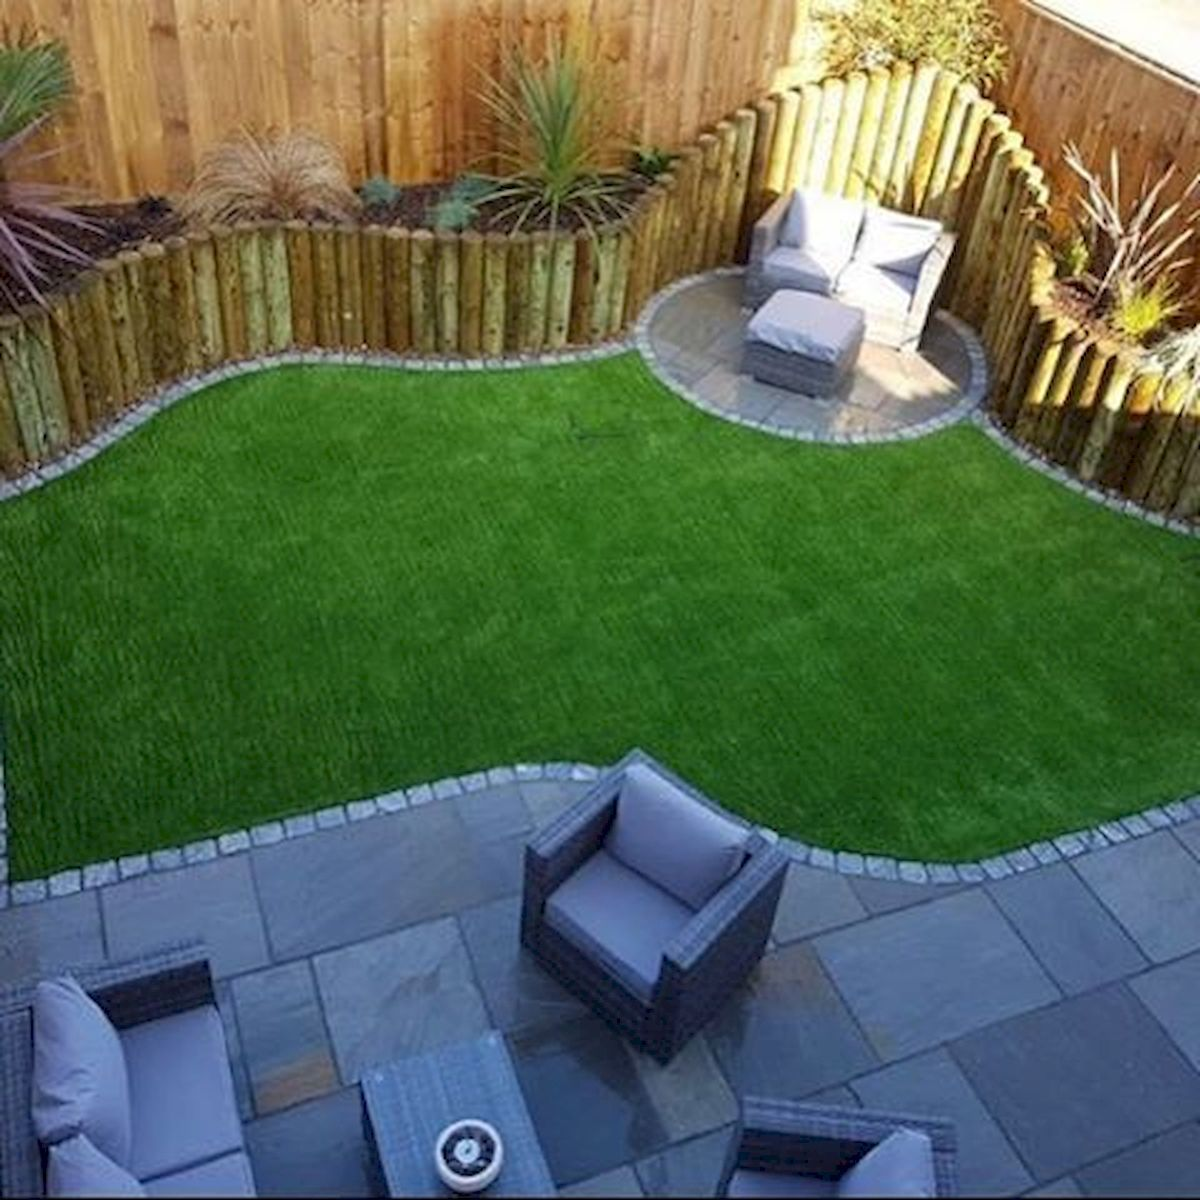 Landscaping Ideas For Sloped Front Yard: Gorgeous 40 Stunning Modern Garden Designs Ideas For Front